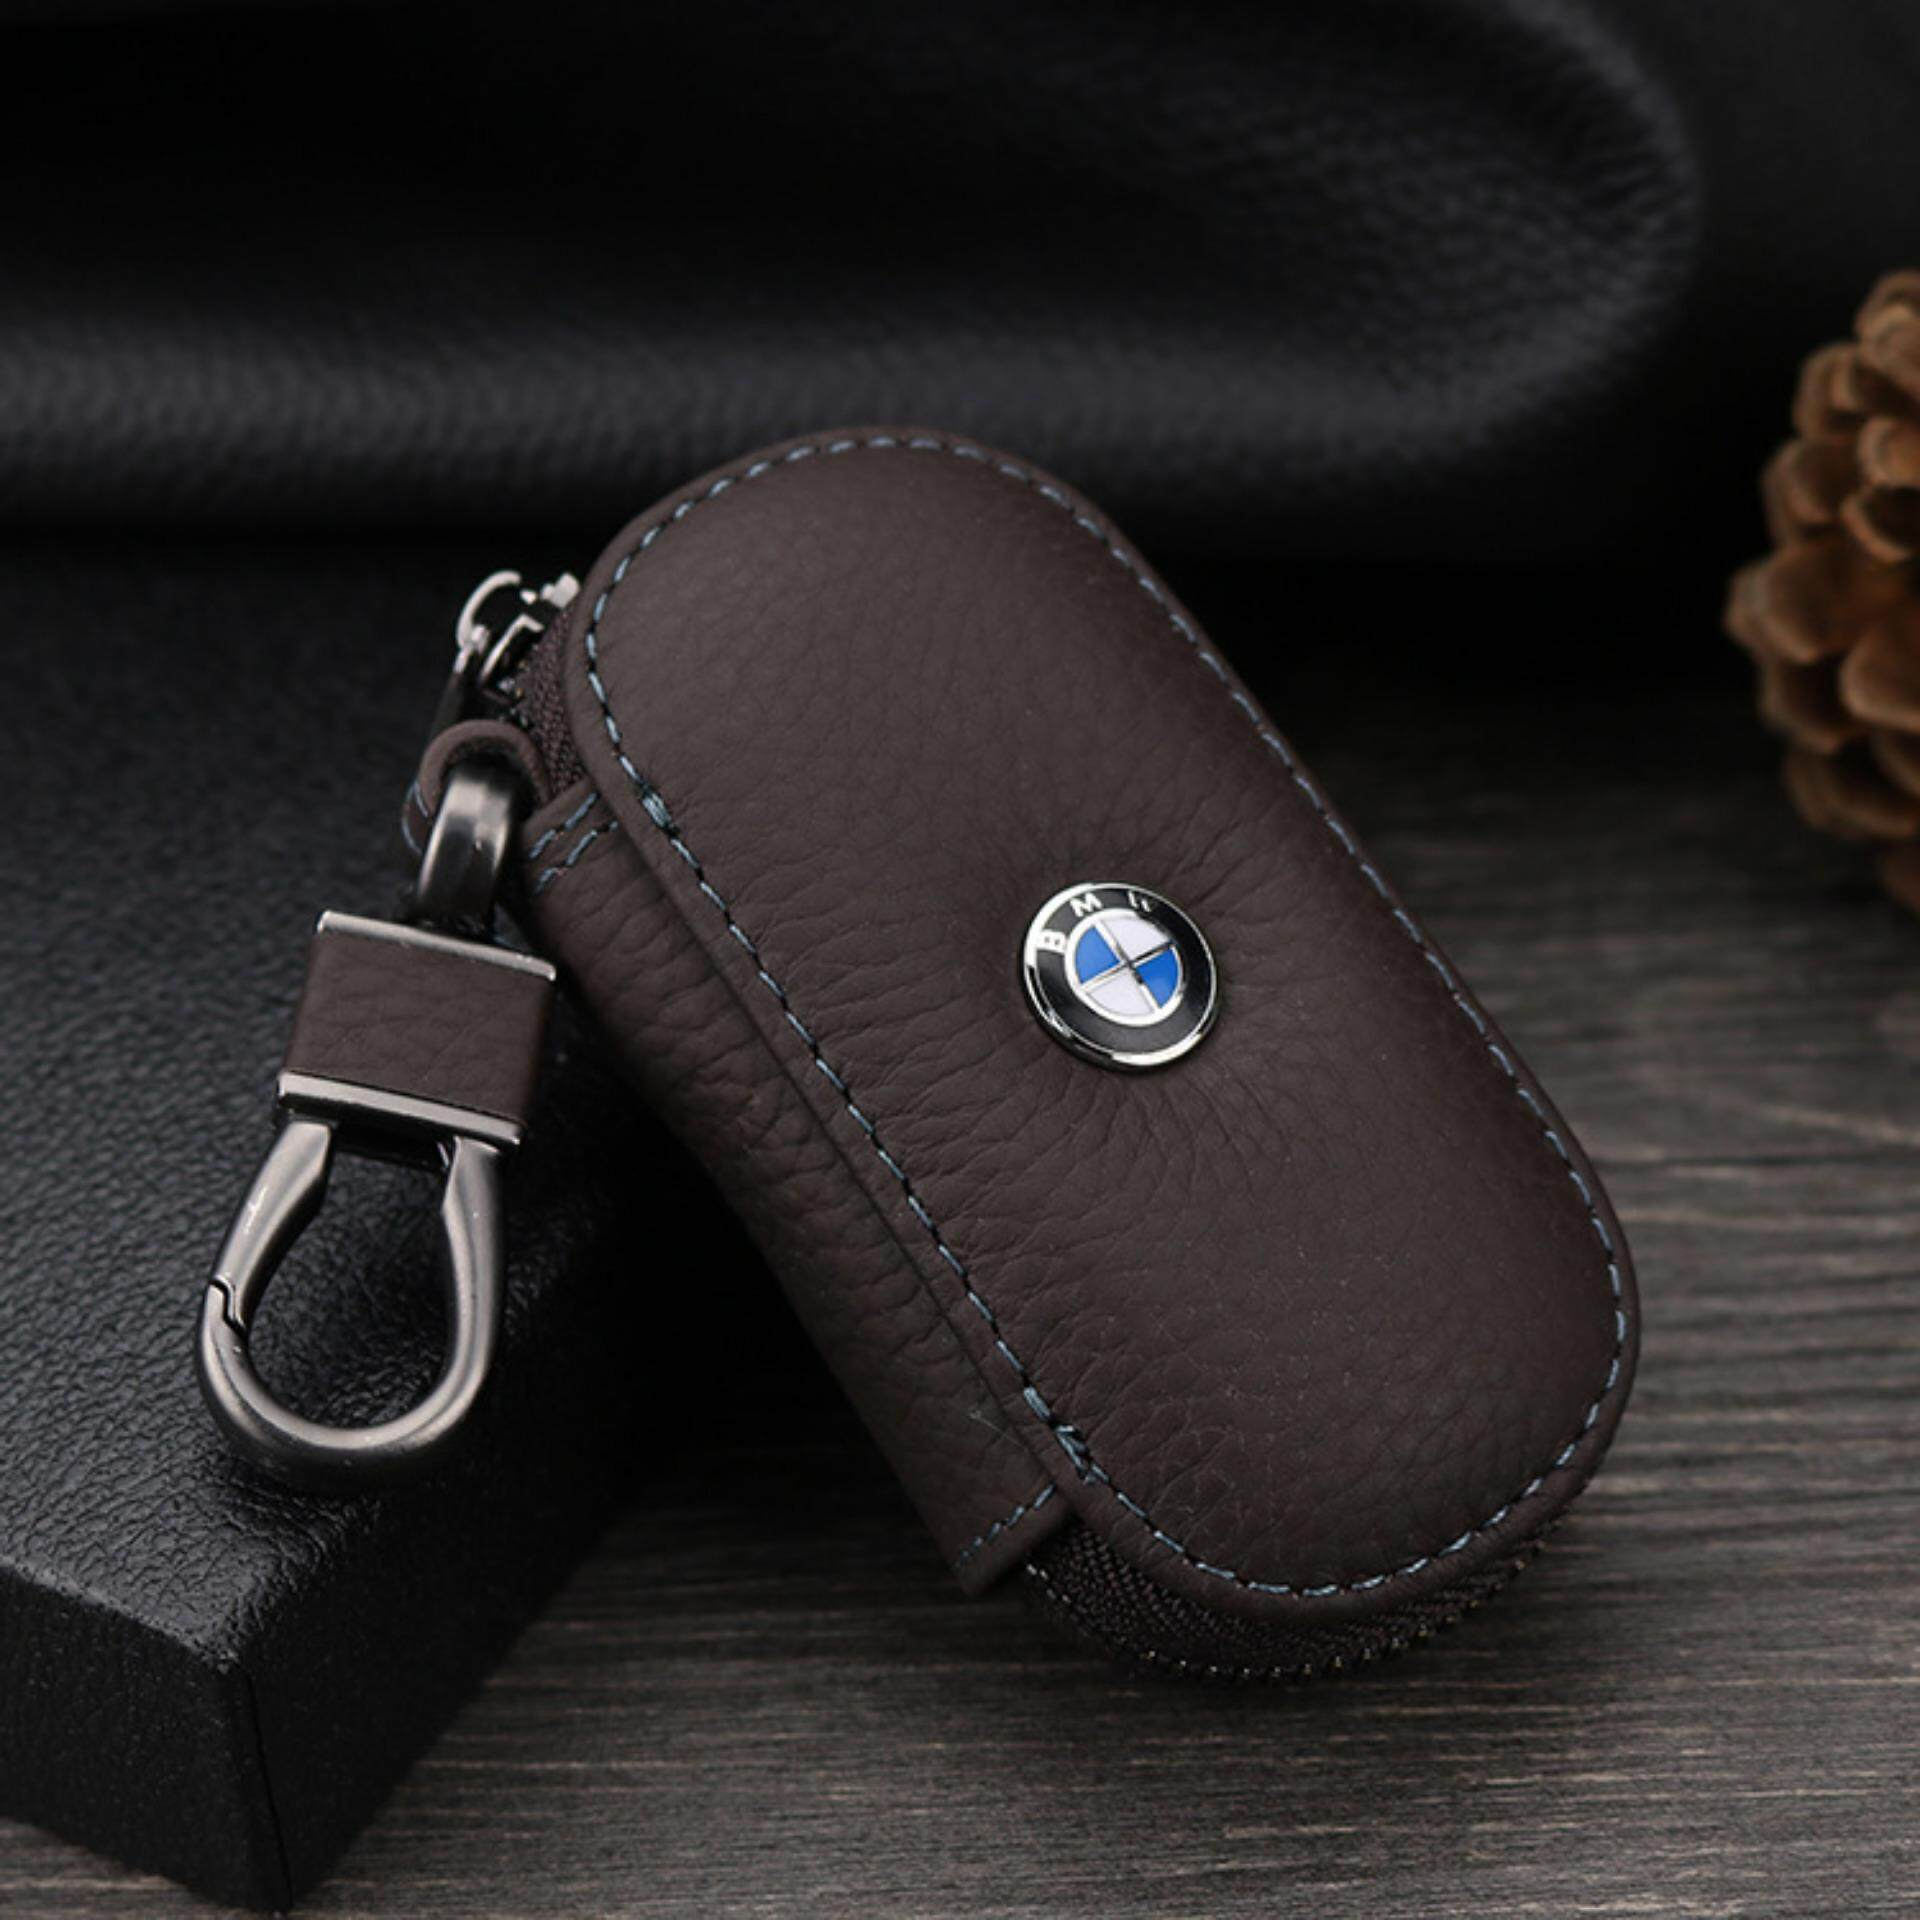 1Pc Leather Key Wallet Car Key Case For For Bmw E90 F10 F30 E34 F20 X5 E53 E30 X6 X1 X3 E46 E39 Coffee Intl Diskon Akhir Tahun